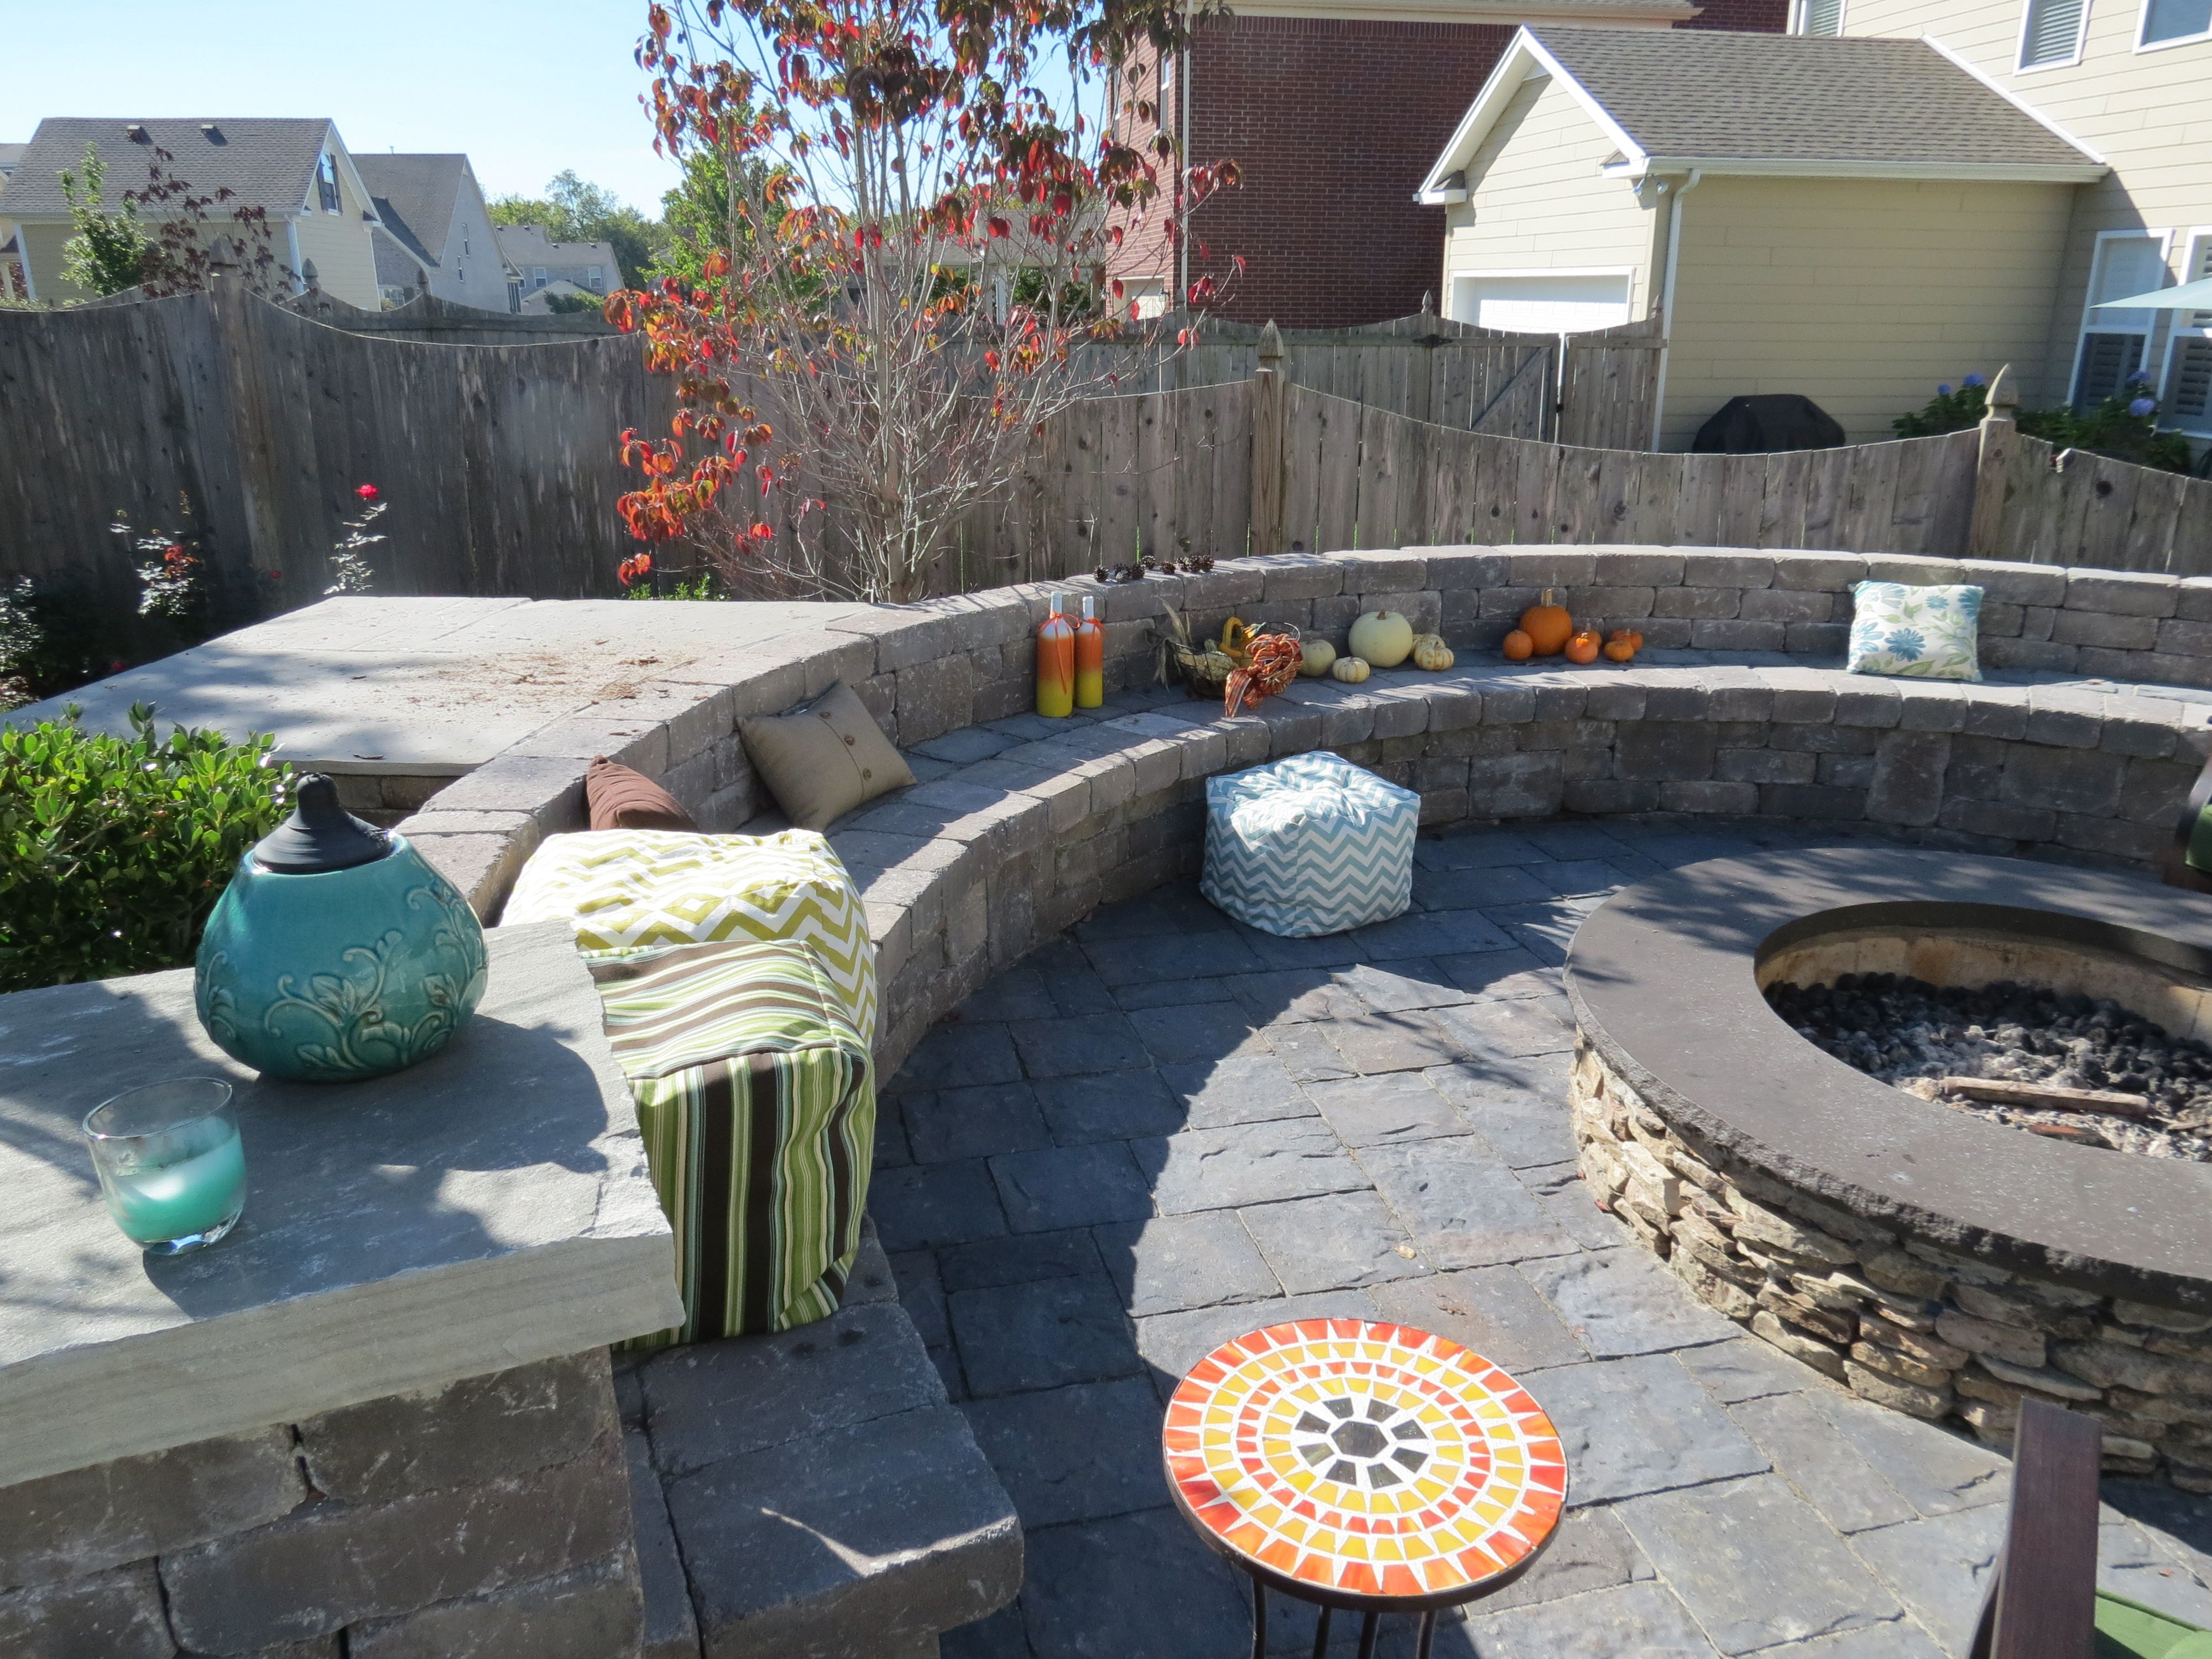 Backyard brick paver patio with natural stone fire pit and seat